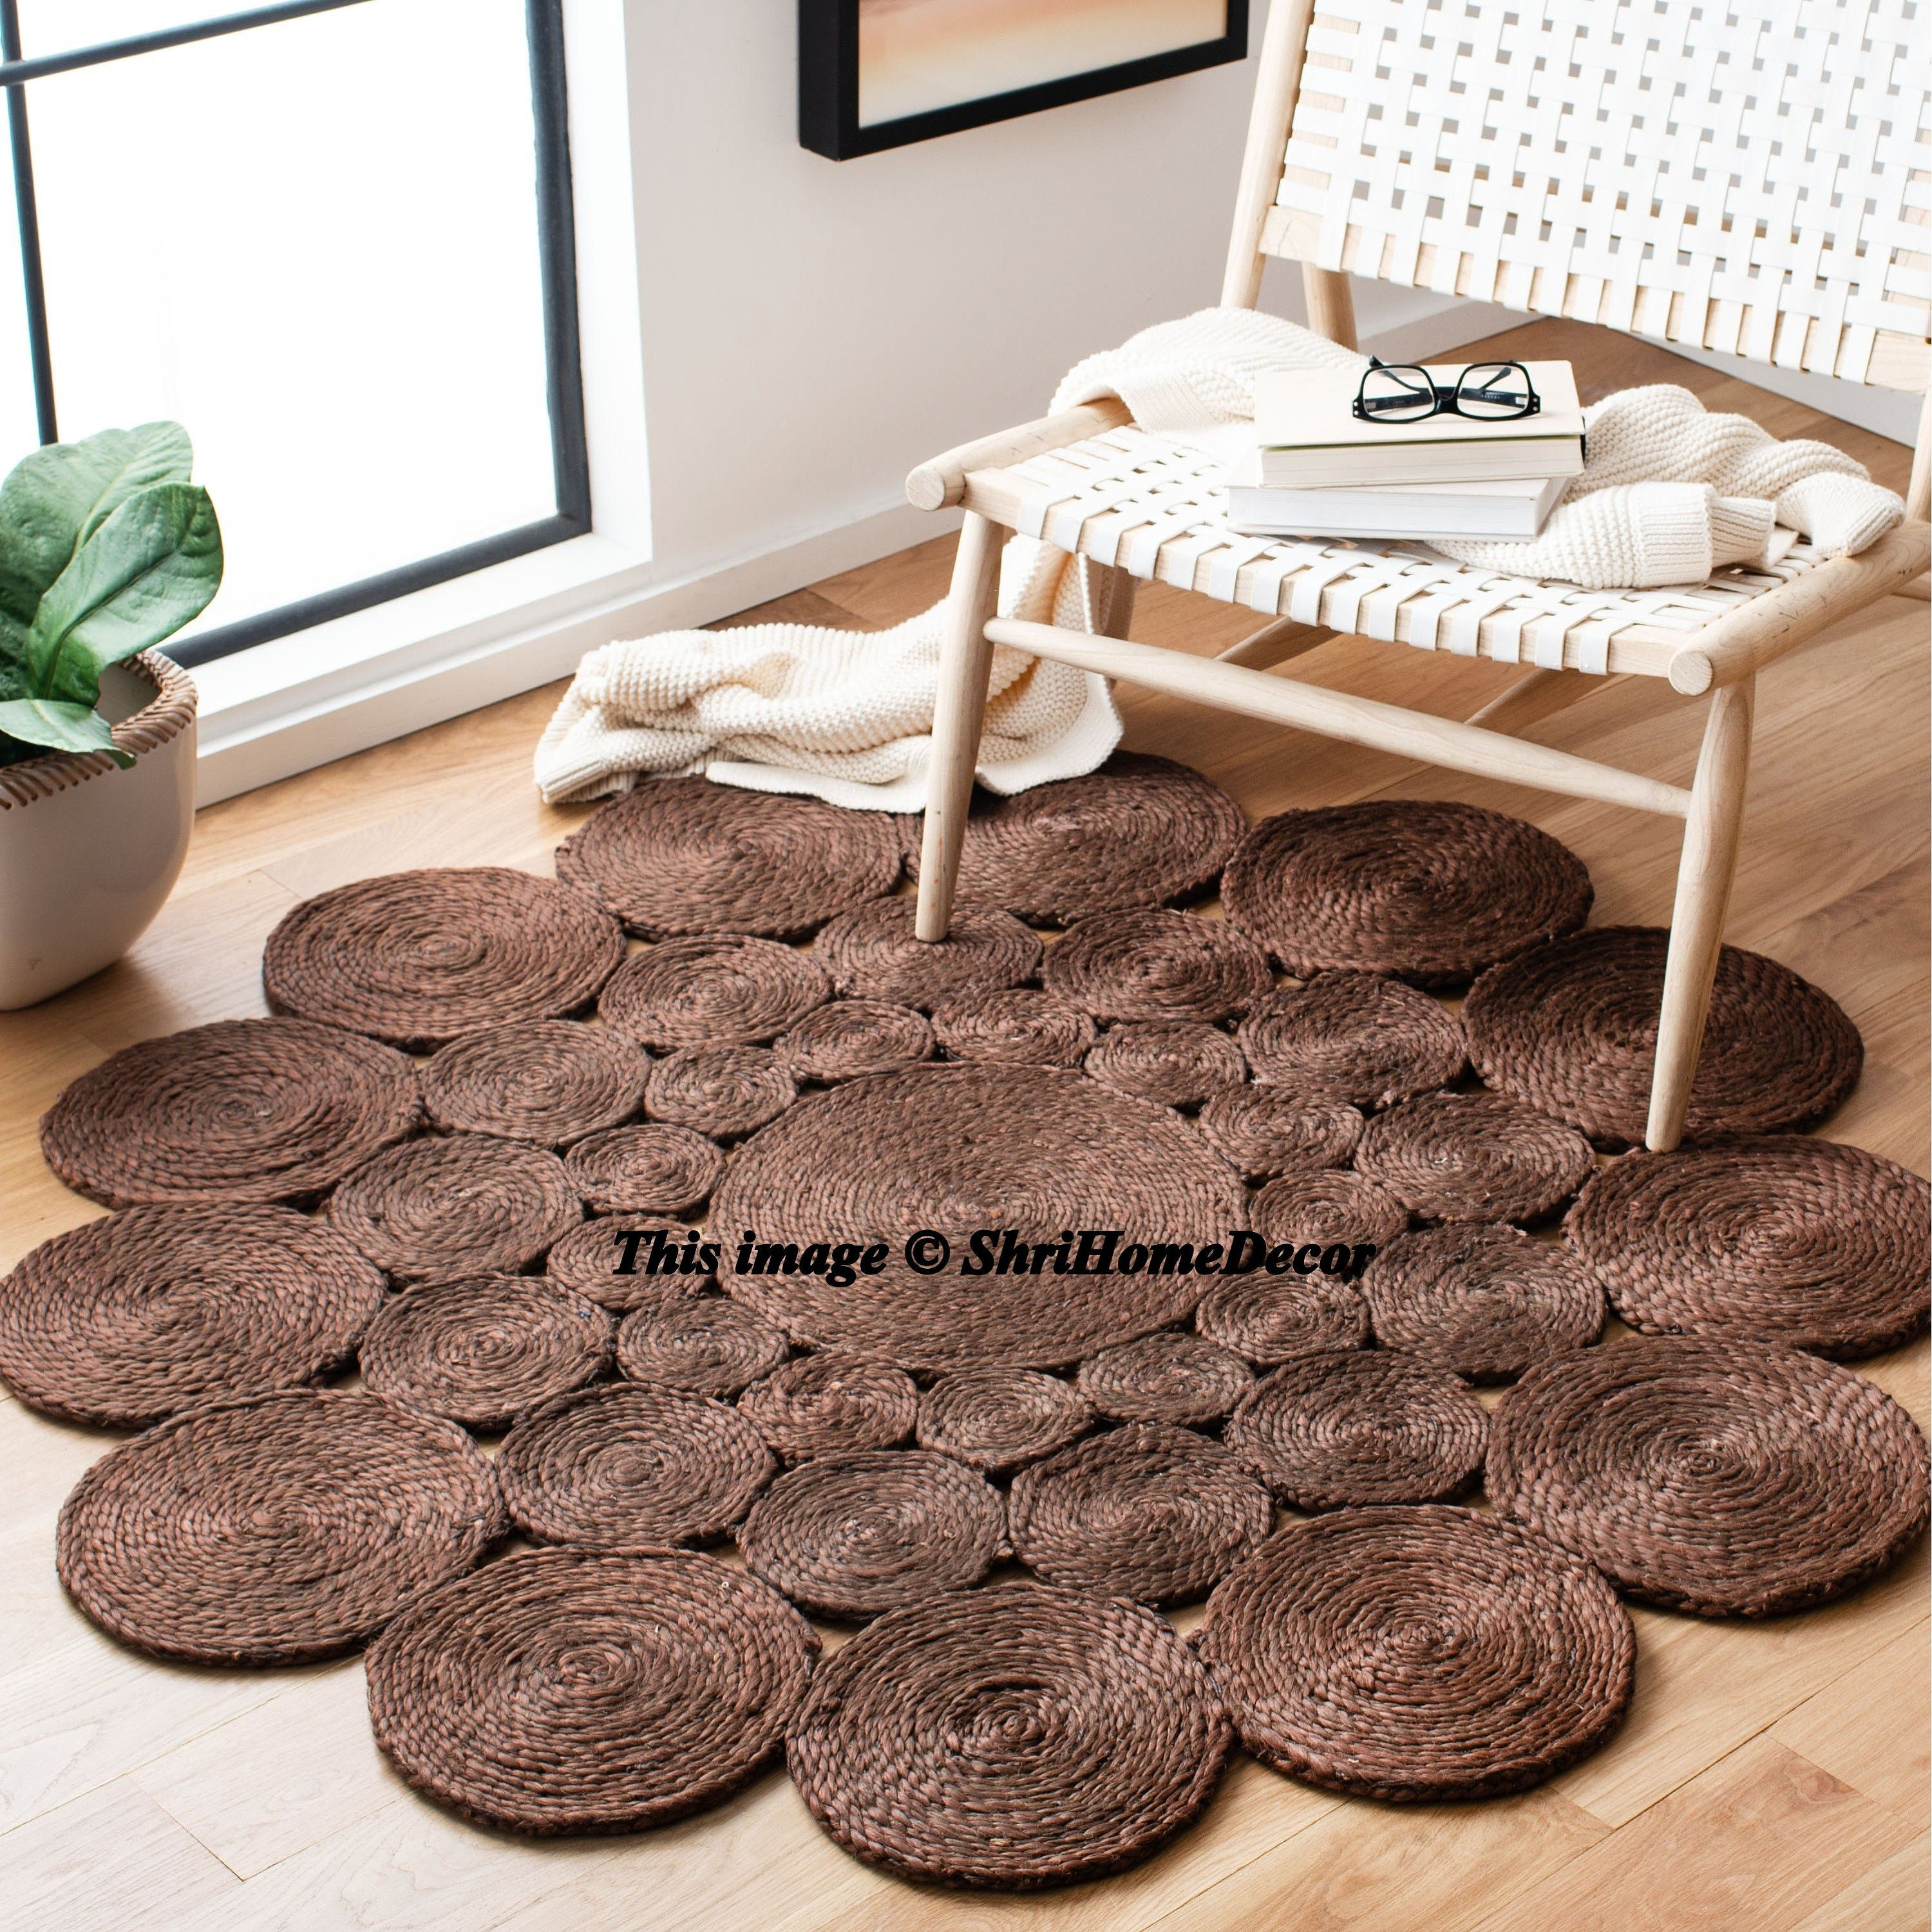 Hand Woven Braided Natural Jute Area Rugs for Home Decor Rugs availbale in Round Multiple Sizes Natural Color Floor Decor Bohemain Jute Rugs